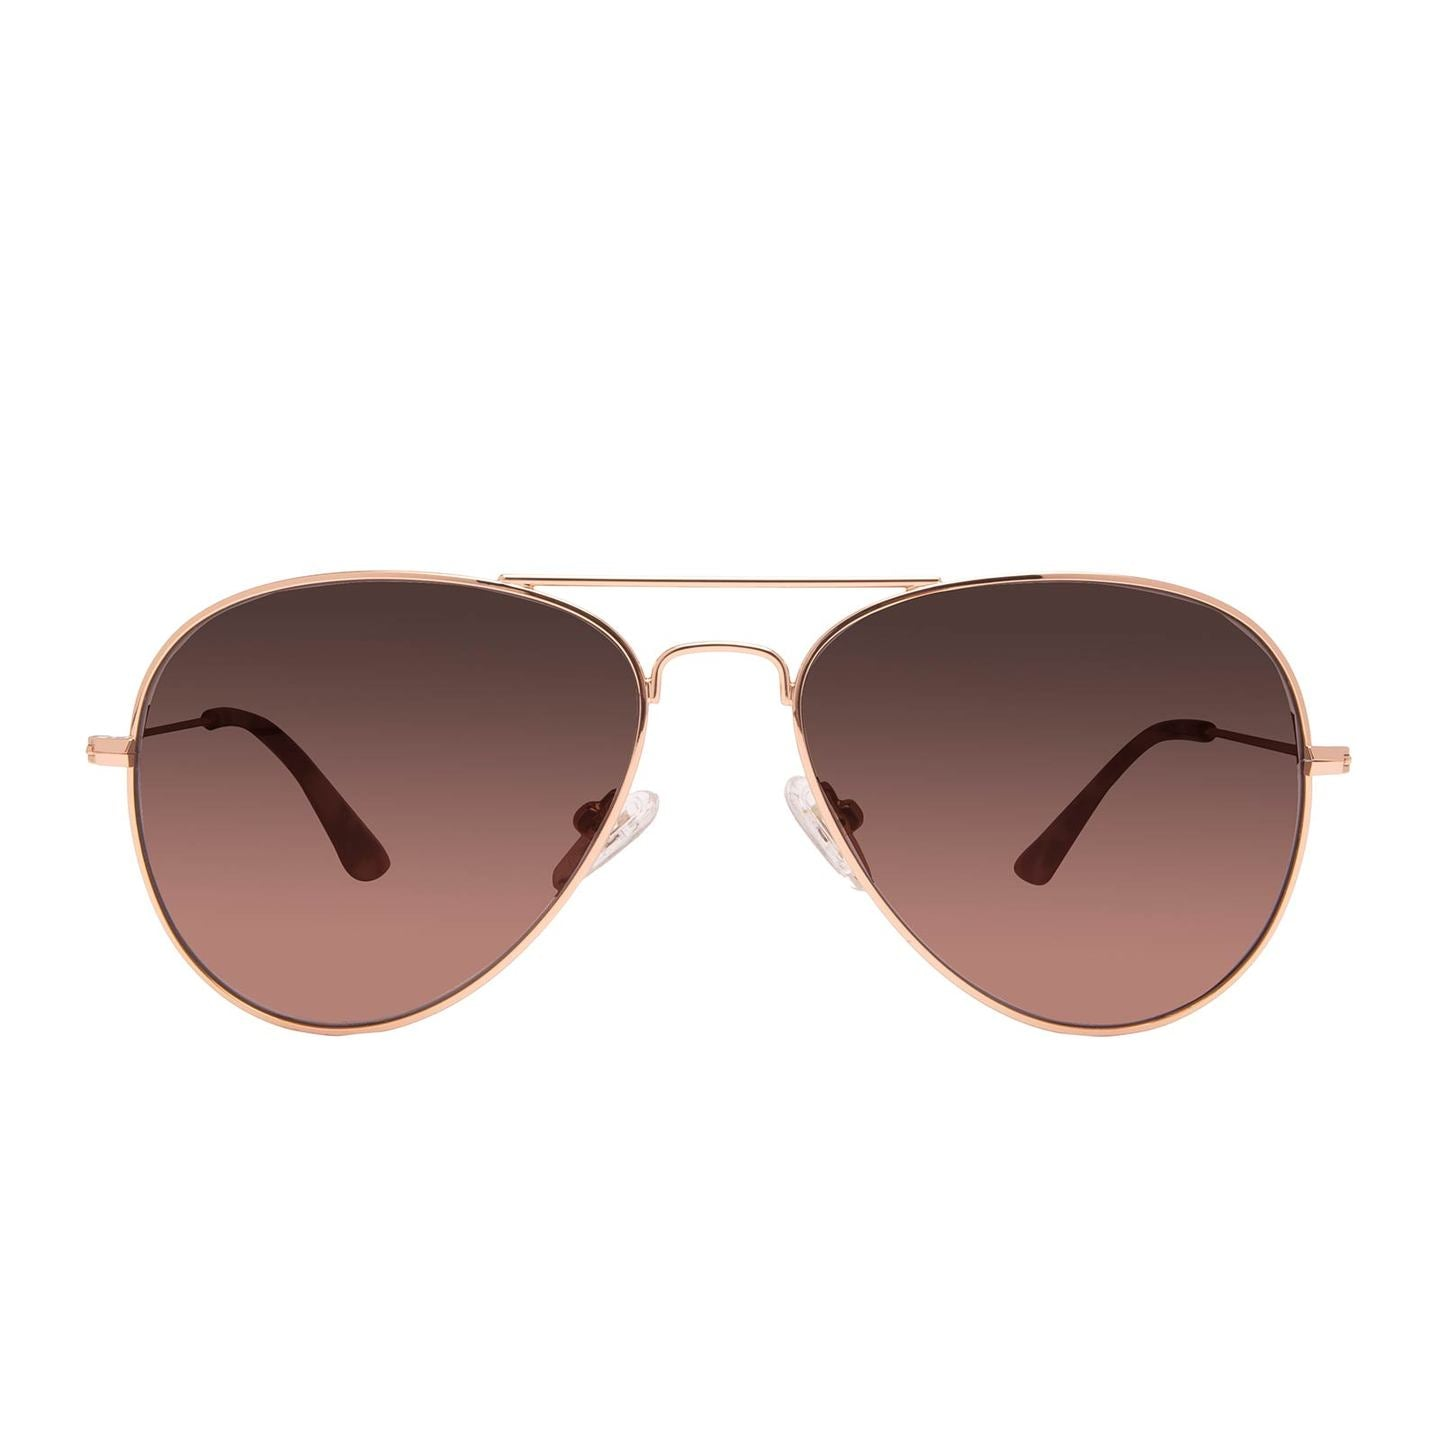 CRUZ AVIATOR - ROSE GOLD + WINE GRADIENT LENS - NON POLARIZED